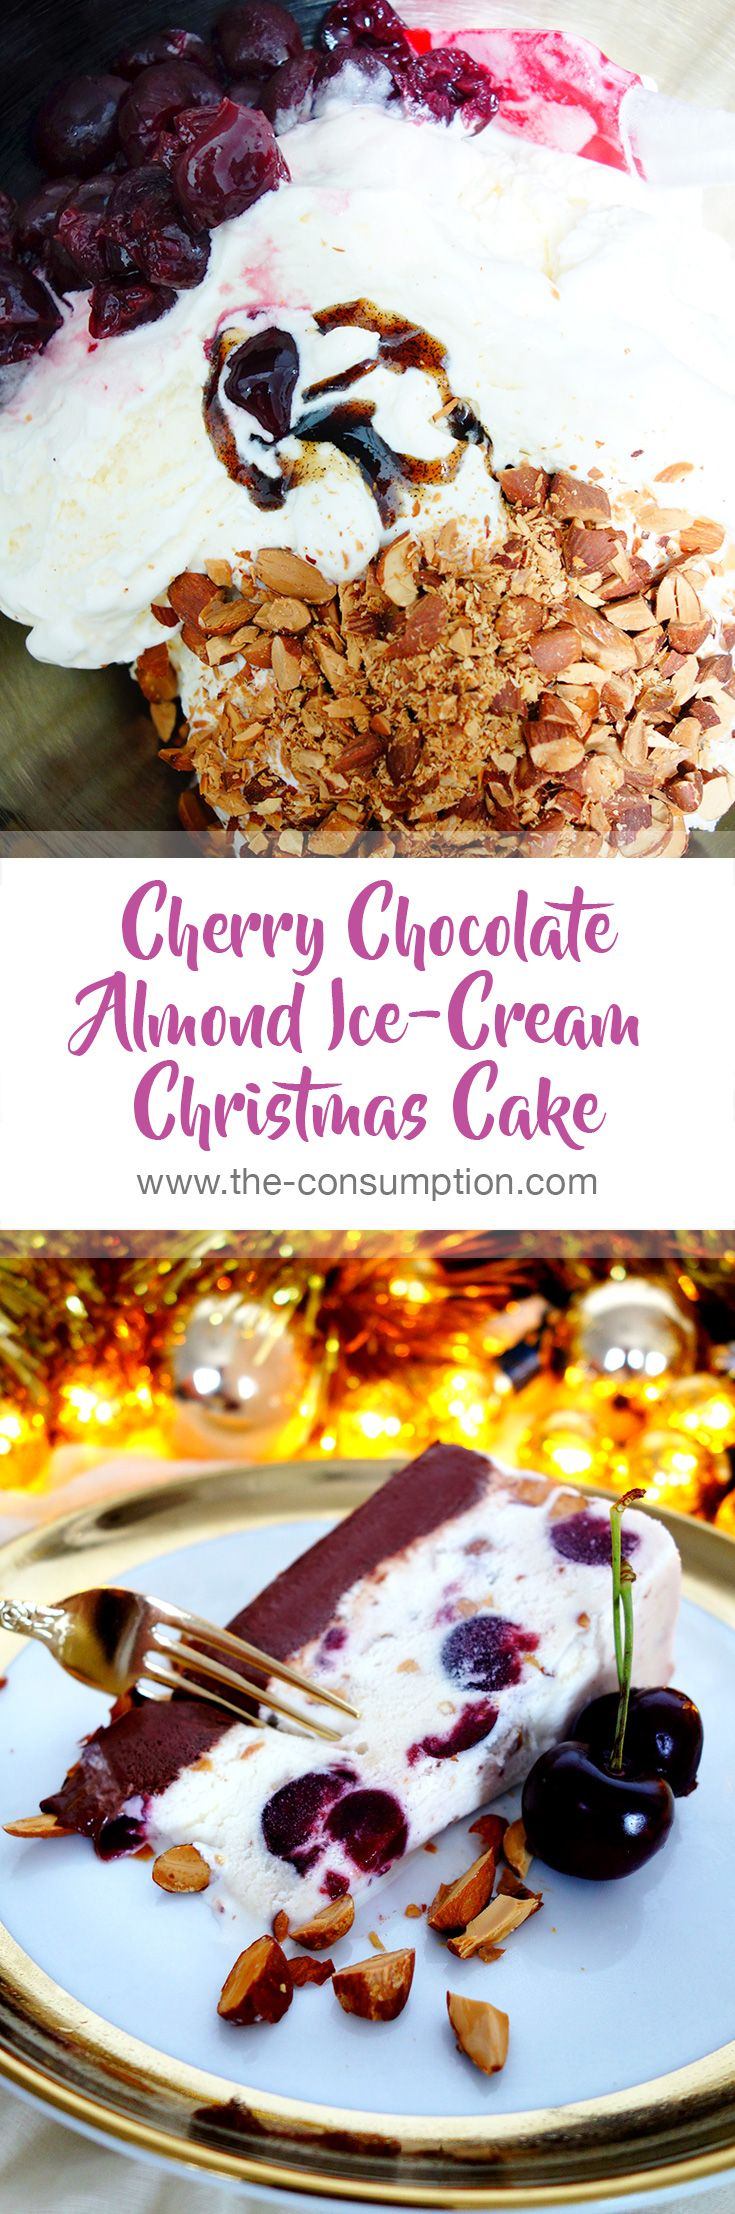 5 Ingredient Cherry Chocolate Almond Ice-Cream Christmas Cake. This recipe is super easy but the end result is fancy as f**k!  A Christmassy combination of vanilla, roast almonds, black cherries and chocolate <3